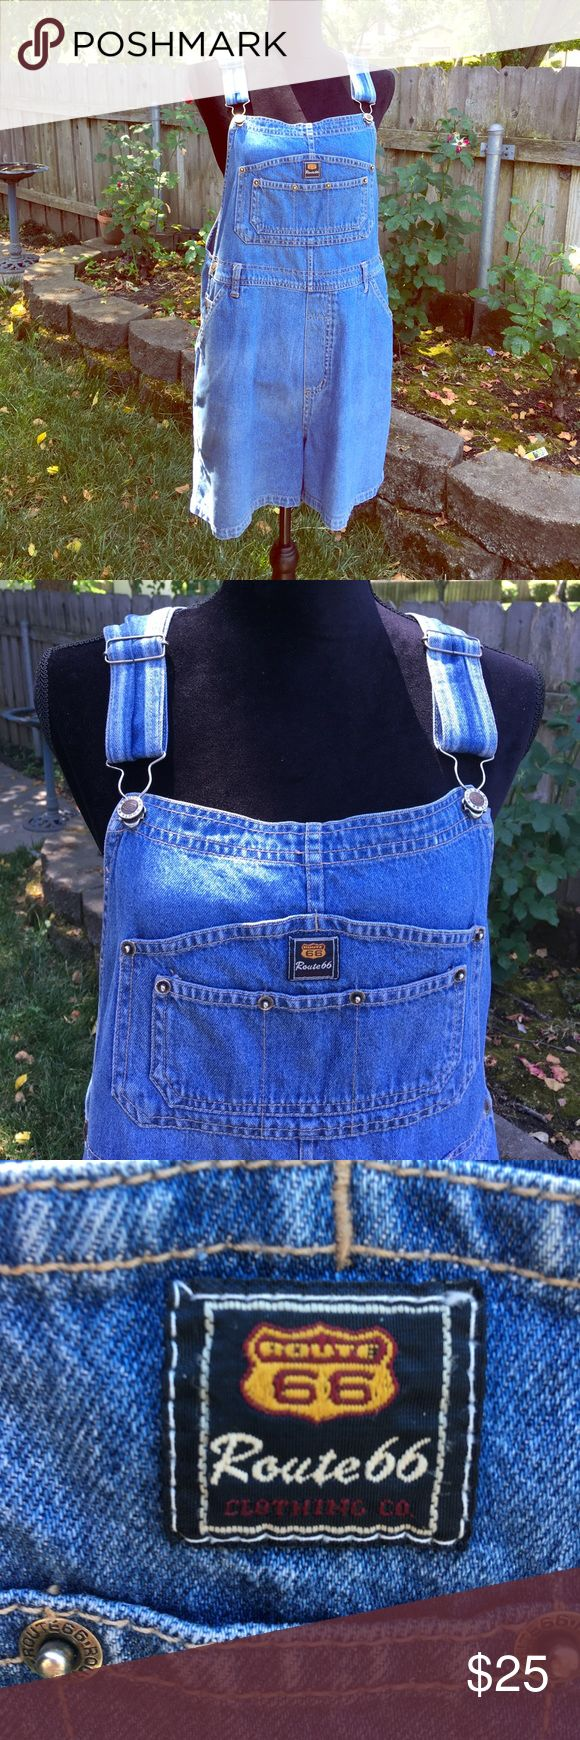 Blue denim shortalls Awesome medium blue lightweight denim shortalls have lots of pockets, a tool loop and belt loops, too if you want to use a belt with them. Logo details on every button and snap, side buttons and adjustable straps. Color is closest to first photo and closeup photos, shade made the color look darker in the other pics.  Also available in white denim, sold separately. Route 66 Jeans Overalls